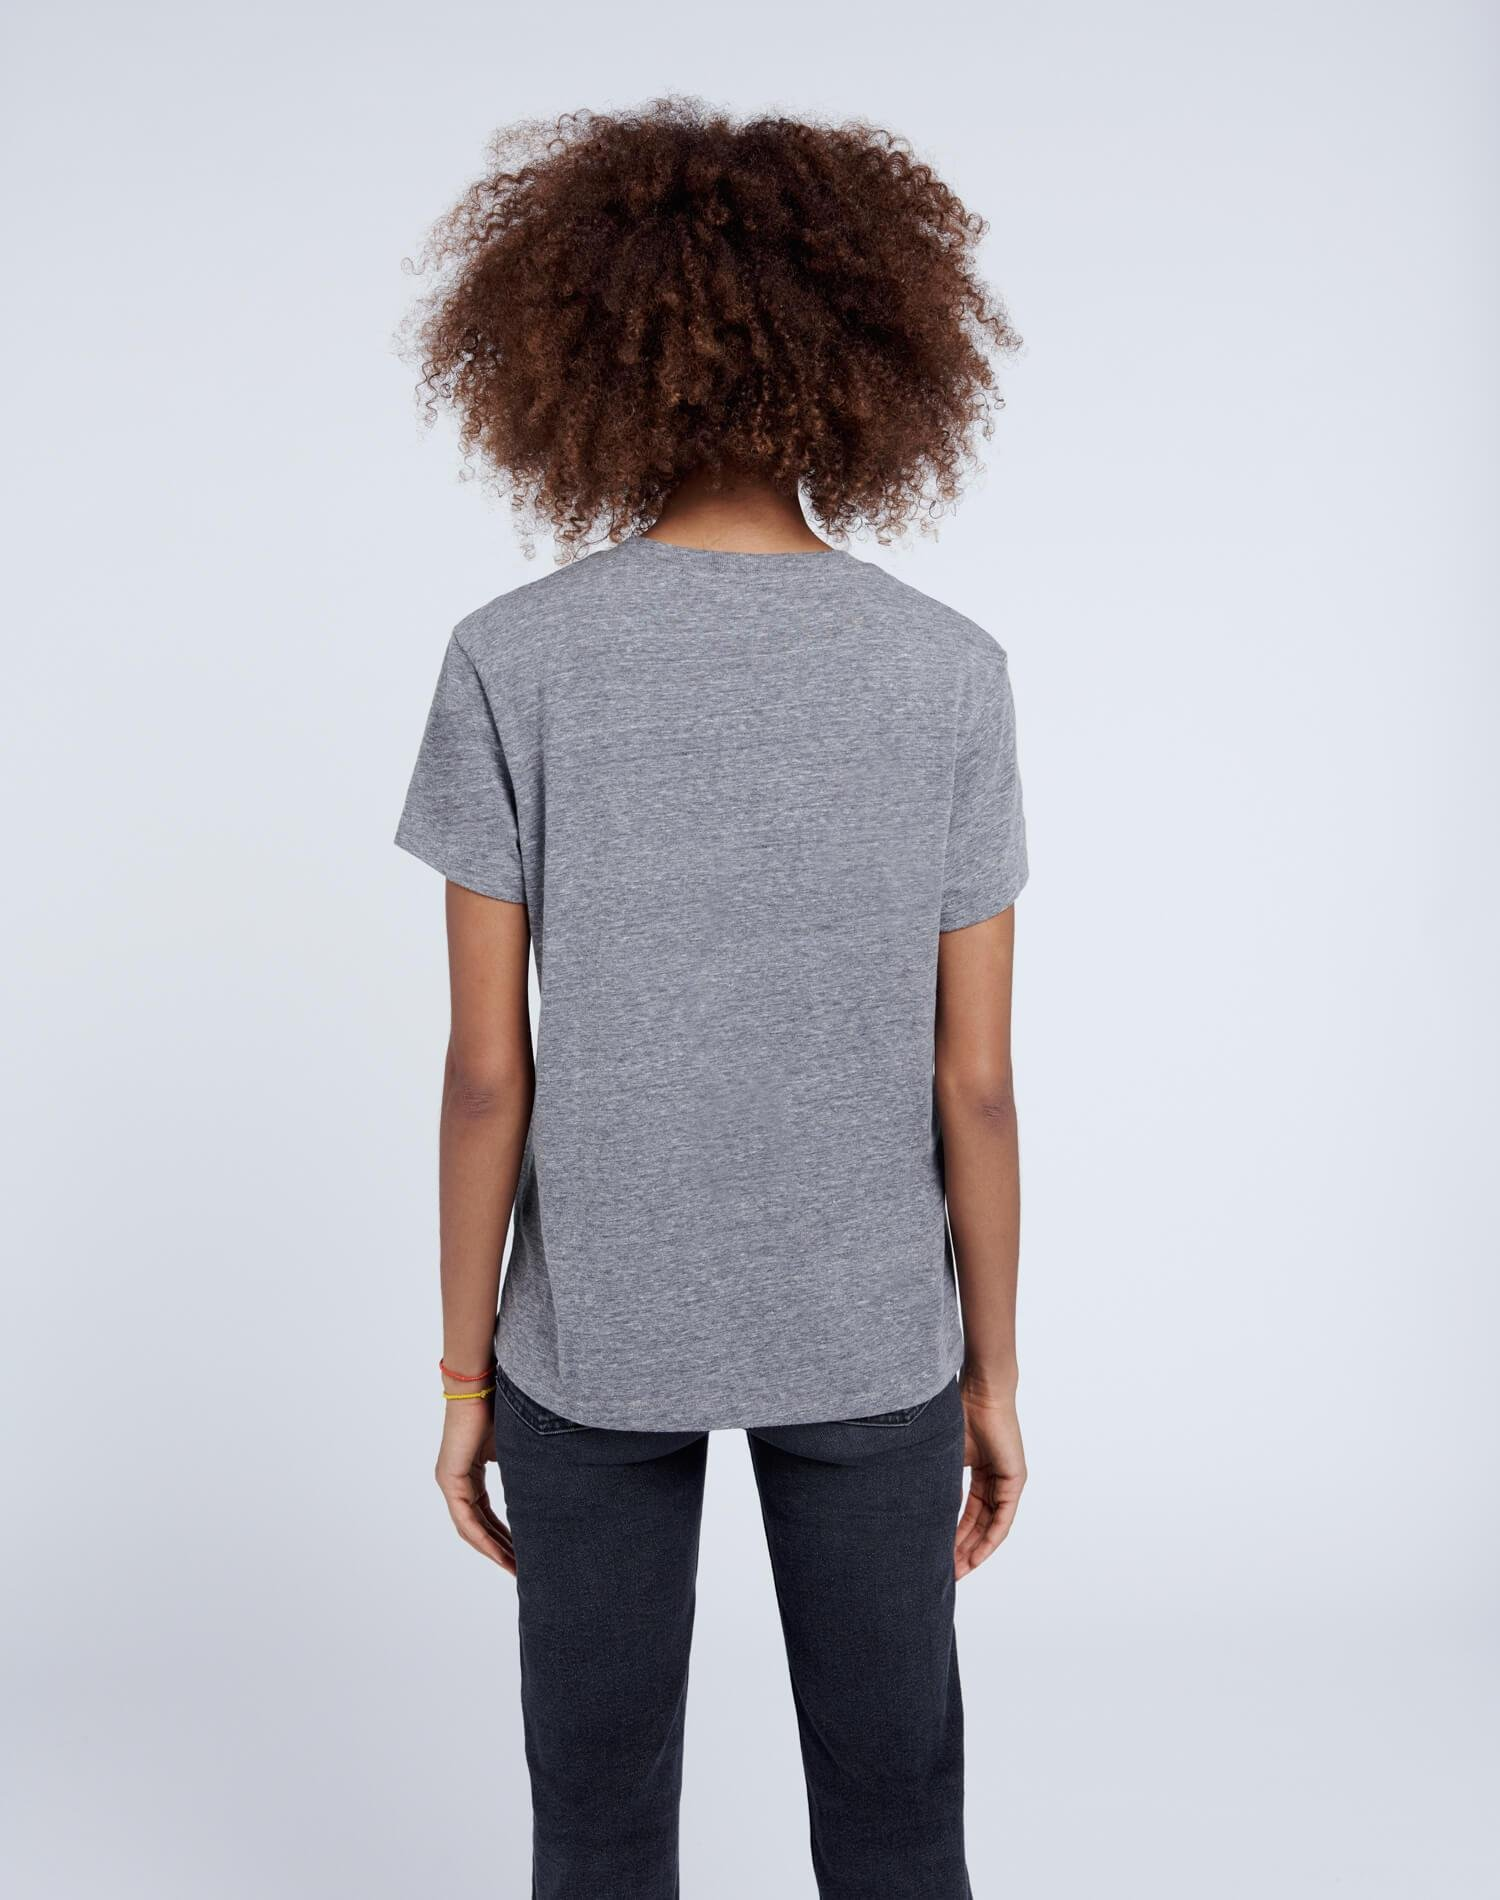 70s Recycled Loose Tee - Heather Grey 2